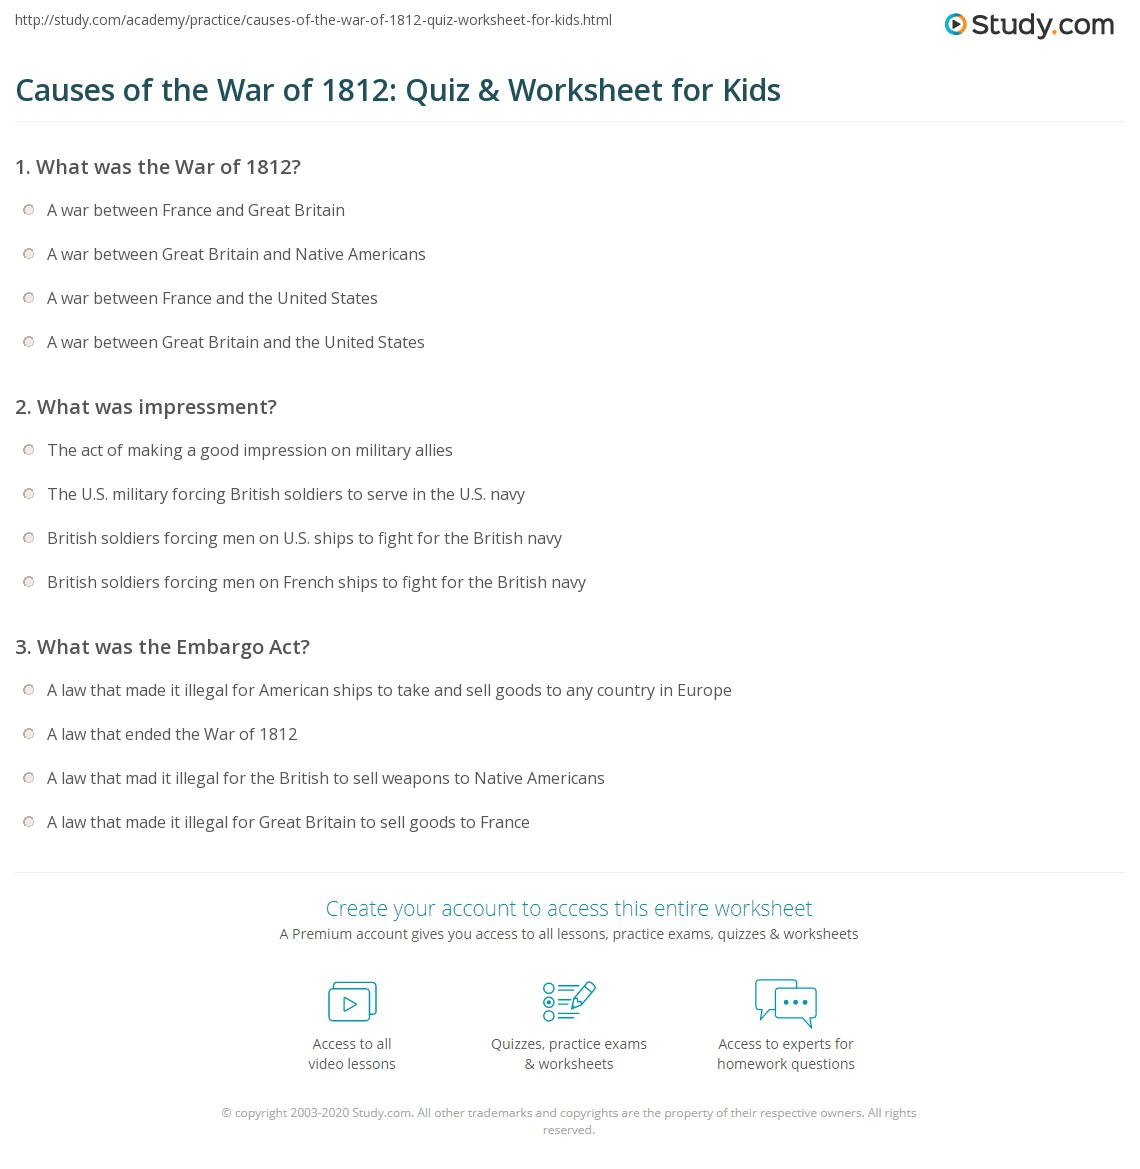 Print Causes of the War of 1812: Lesson for Kids Worksheet